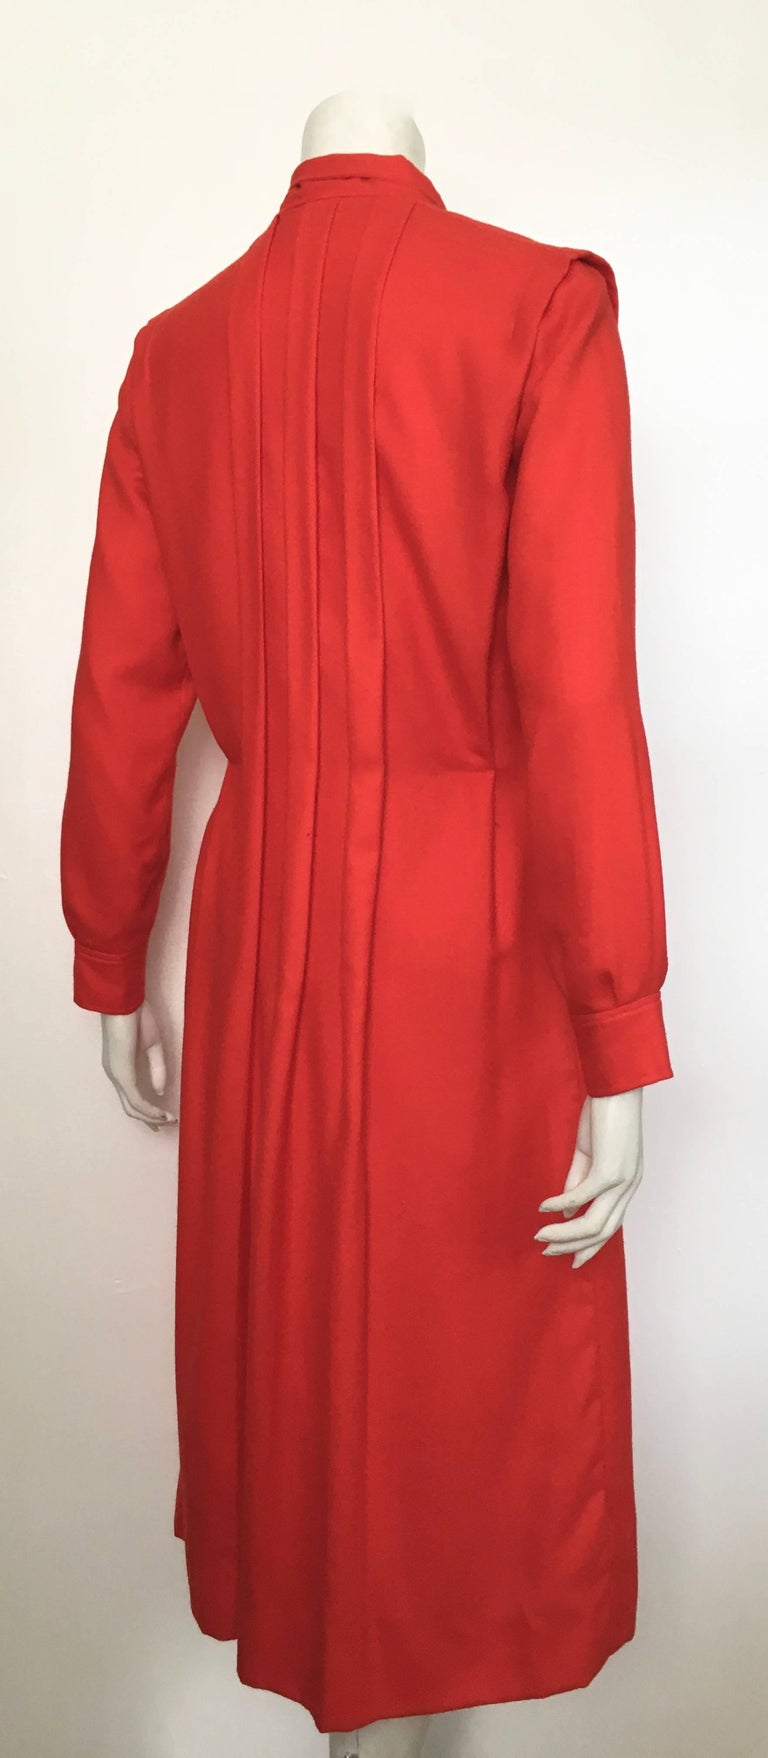 Courreges Red Wool Long Sleeve Dress with Pockets, 1980s  For Sale 1